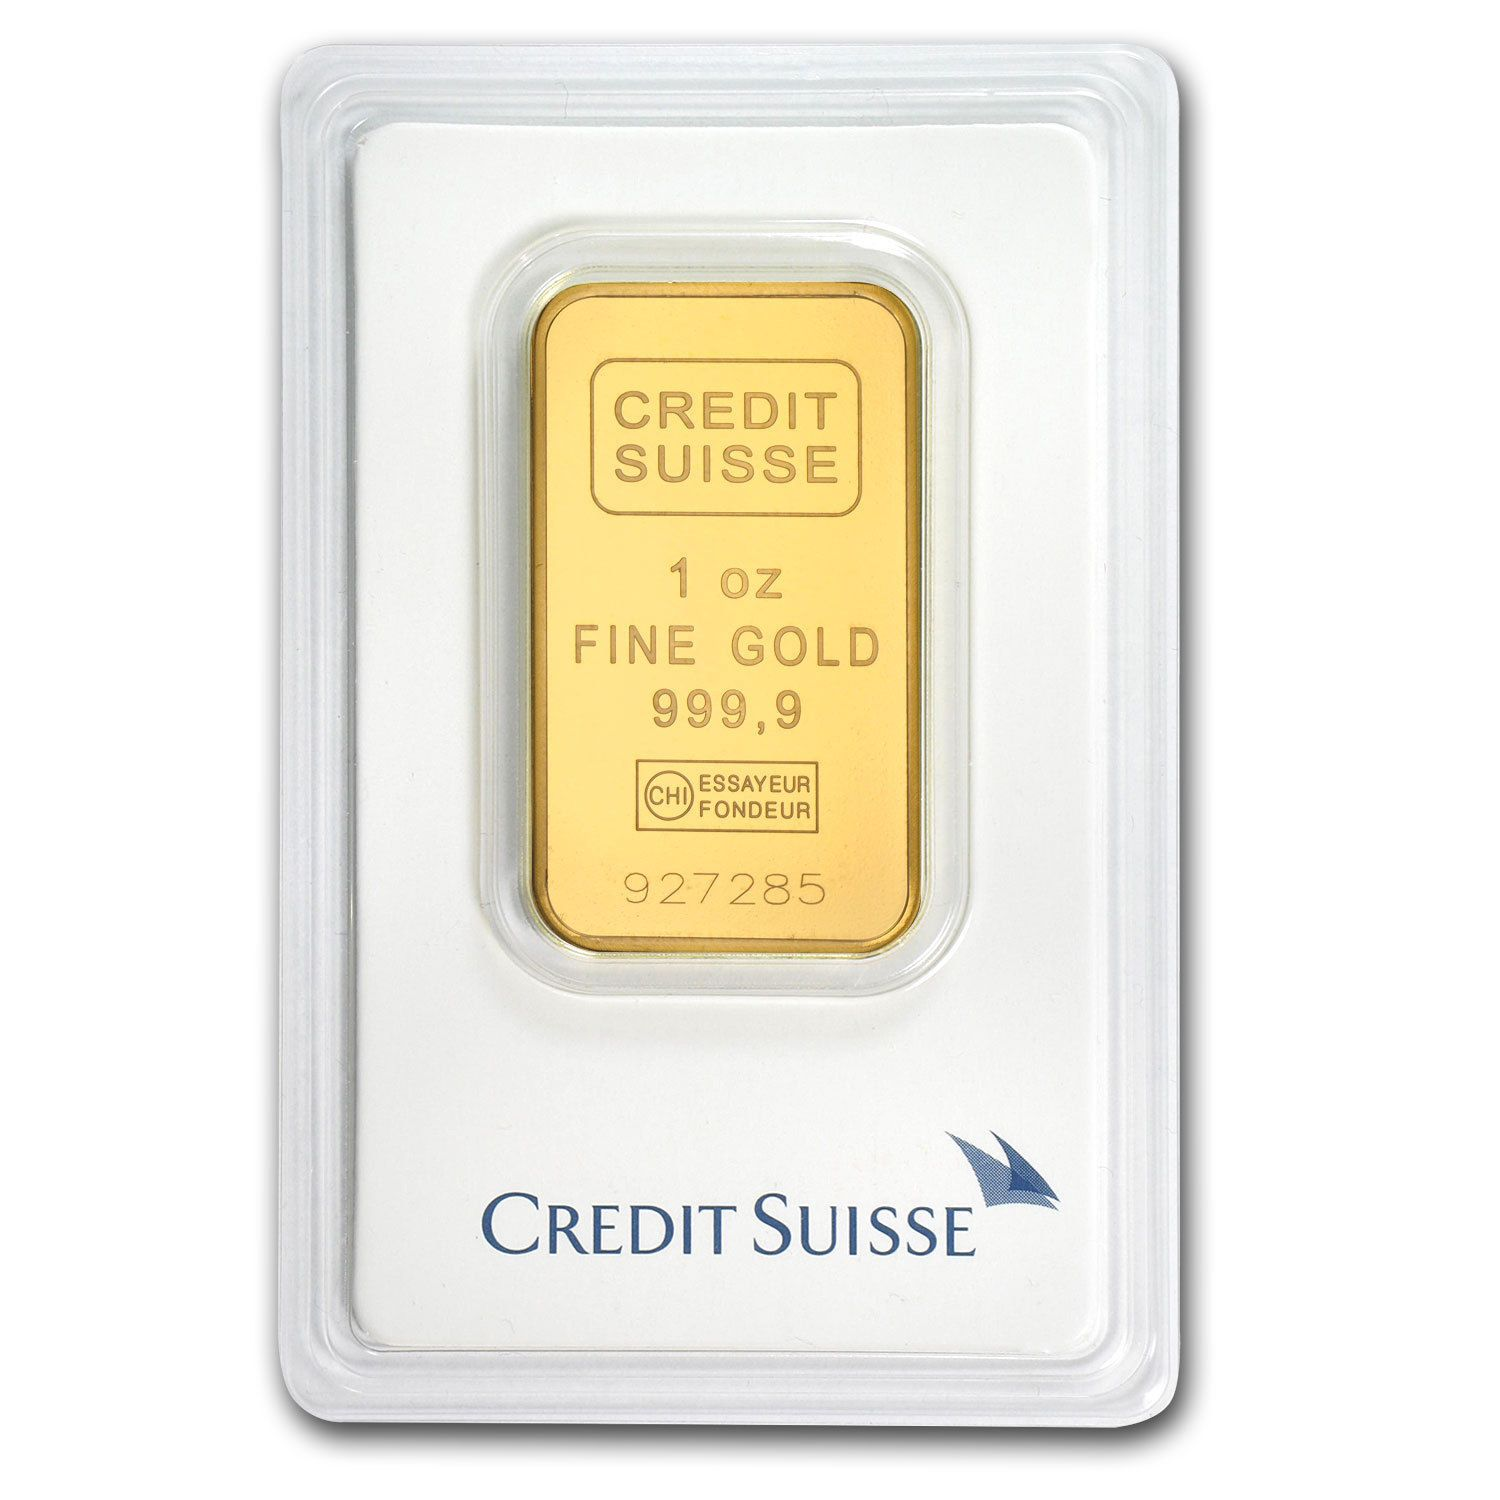 Shop By Category Gold Silver Platinum Palladium Auctions Buy It Now Daily Deal Top Picksdeals Gold U S Mint G Credit Suisse Gold Bullion Bars Gold Bullion